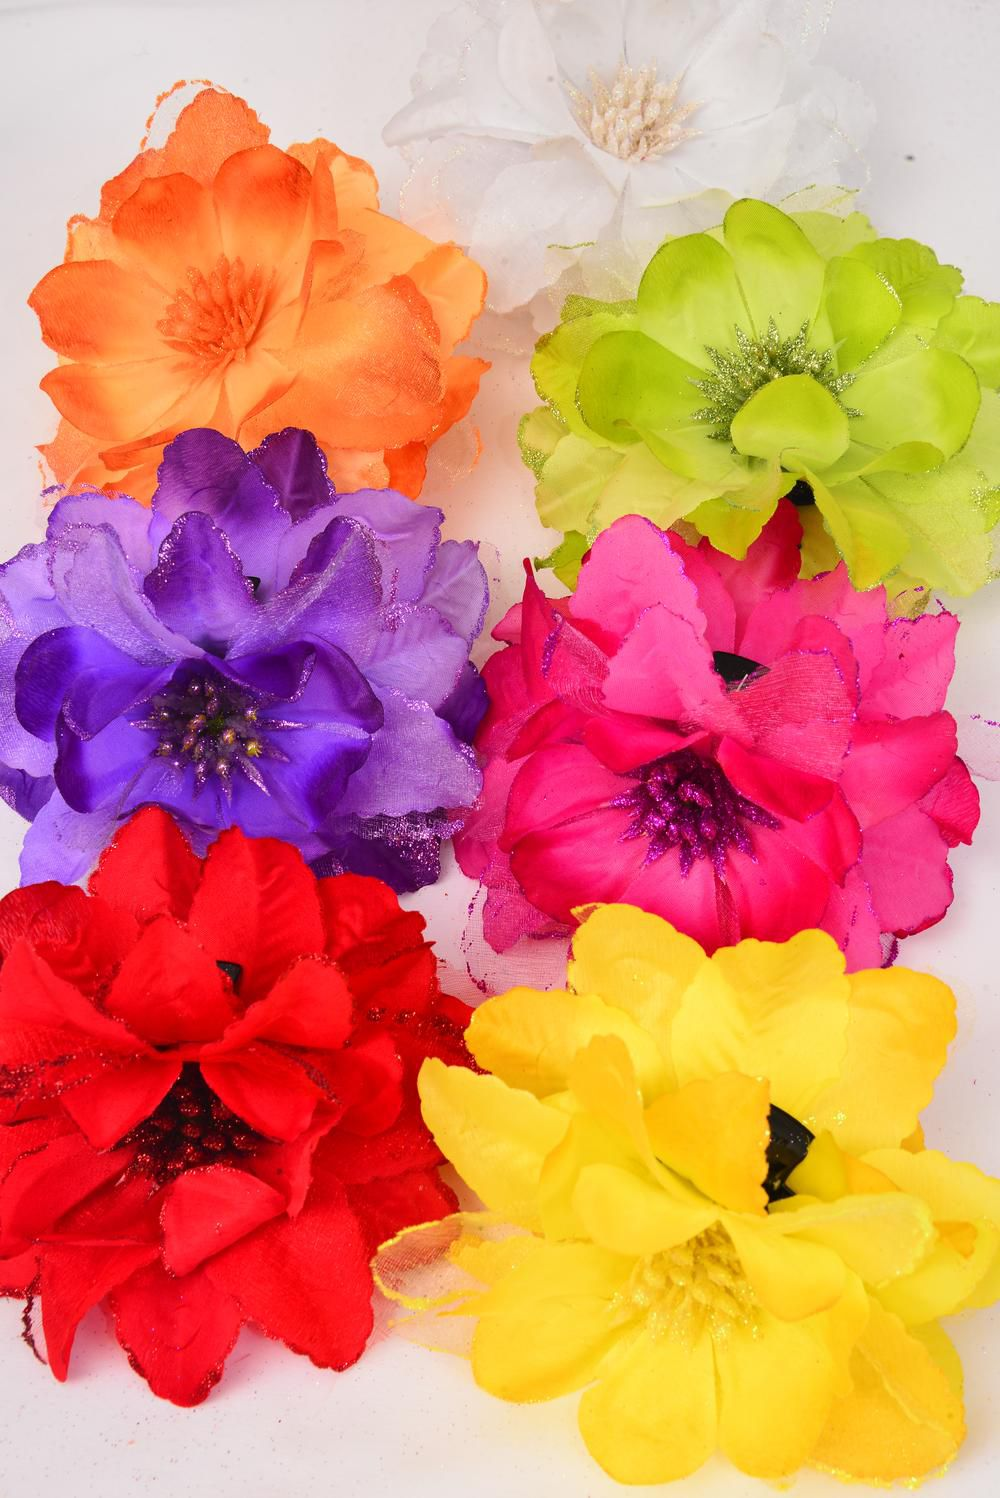 "Jaw Clip Flower Chiffon Glitter Trime/DZ Flower Size-5.5"" Wide,Jaw Clip-3.5"" Wide,2 Red,2 Yellow,2 Purple,2 Fuchsia,2 White,1 Orange,1 Lime,7 Color Mix,Hang Tag & UPC Code,W Clear Box"